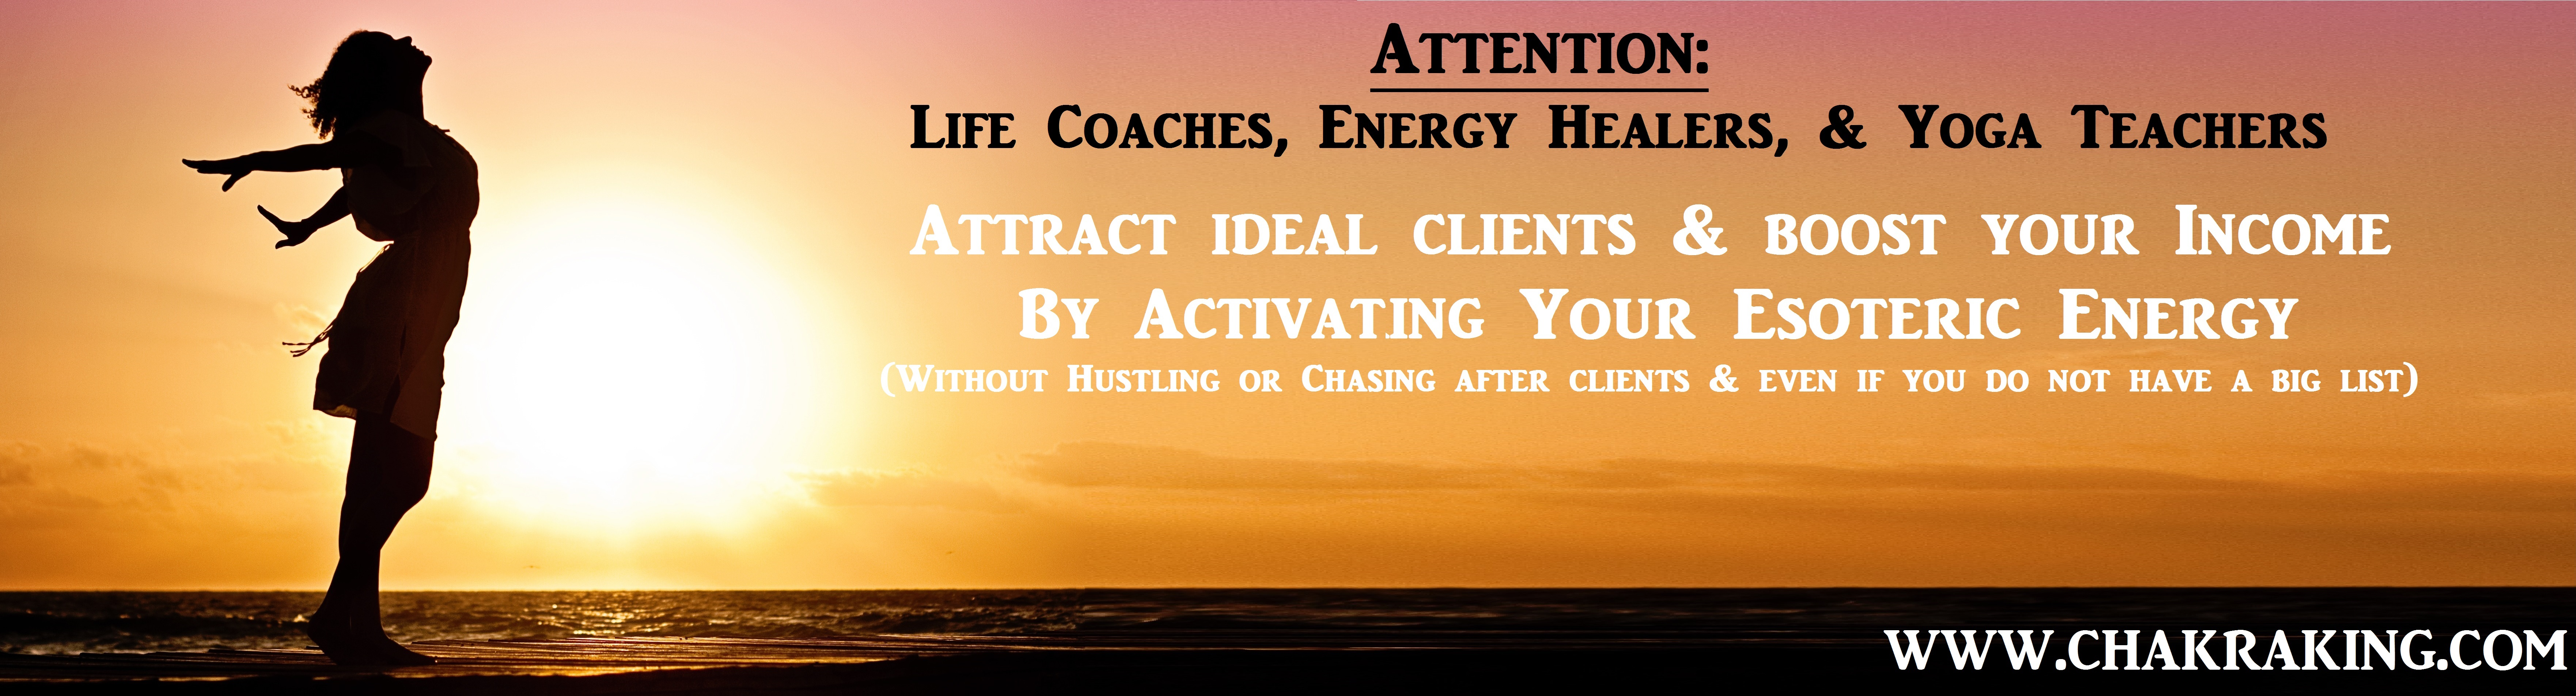 Attention : Life Coaches, Energy Healers & Yoga Teacheres